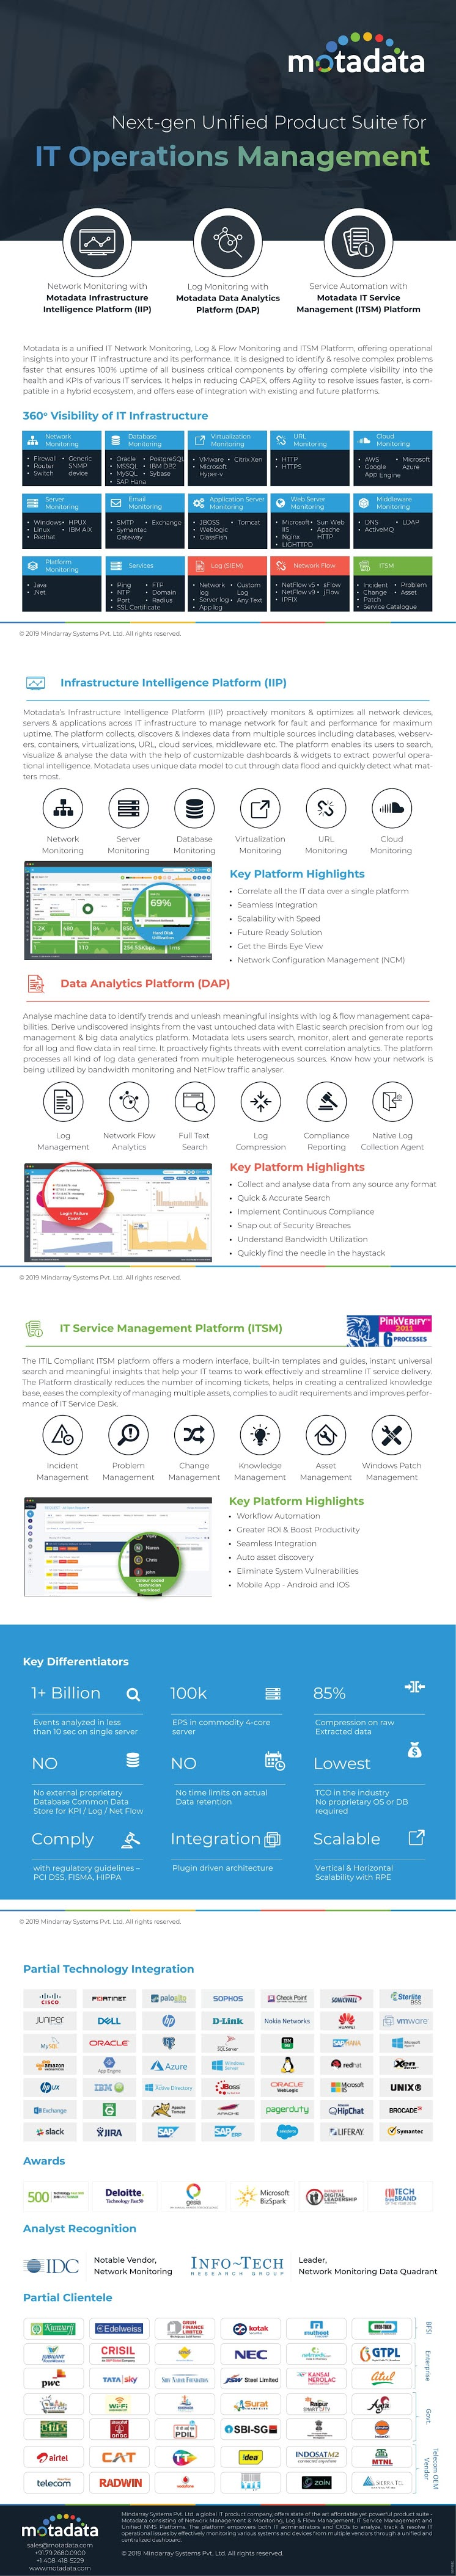 Next-gen Unified Product Suite For IT Operations Management #infographic #Brochure #Operations Management #infographics #IT Operations